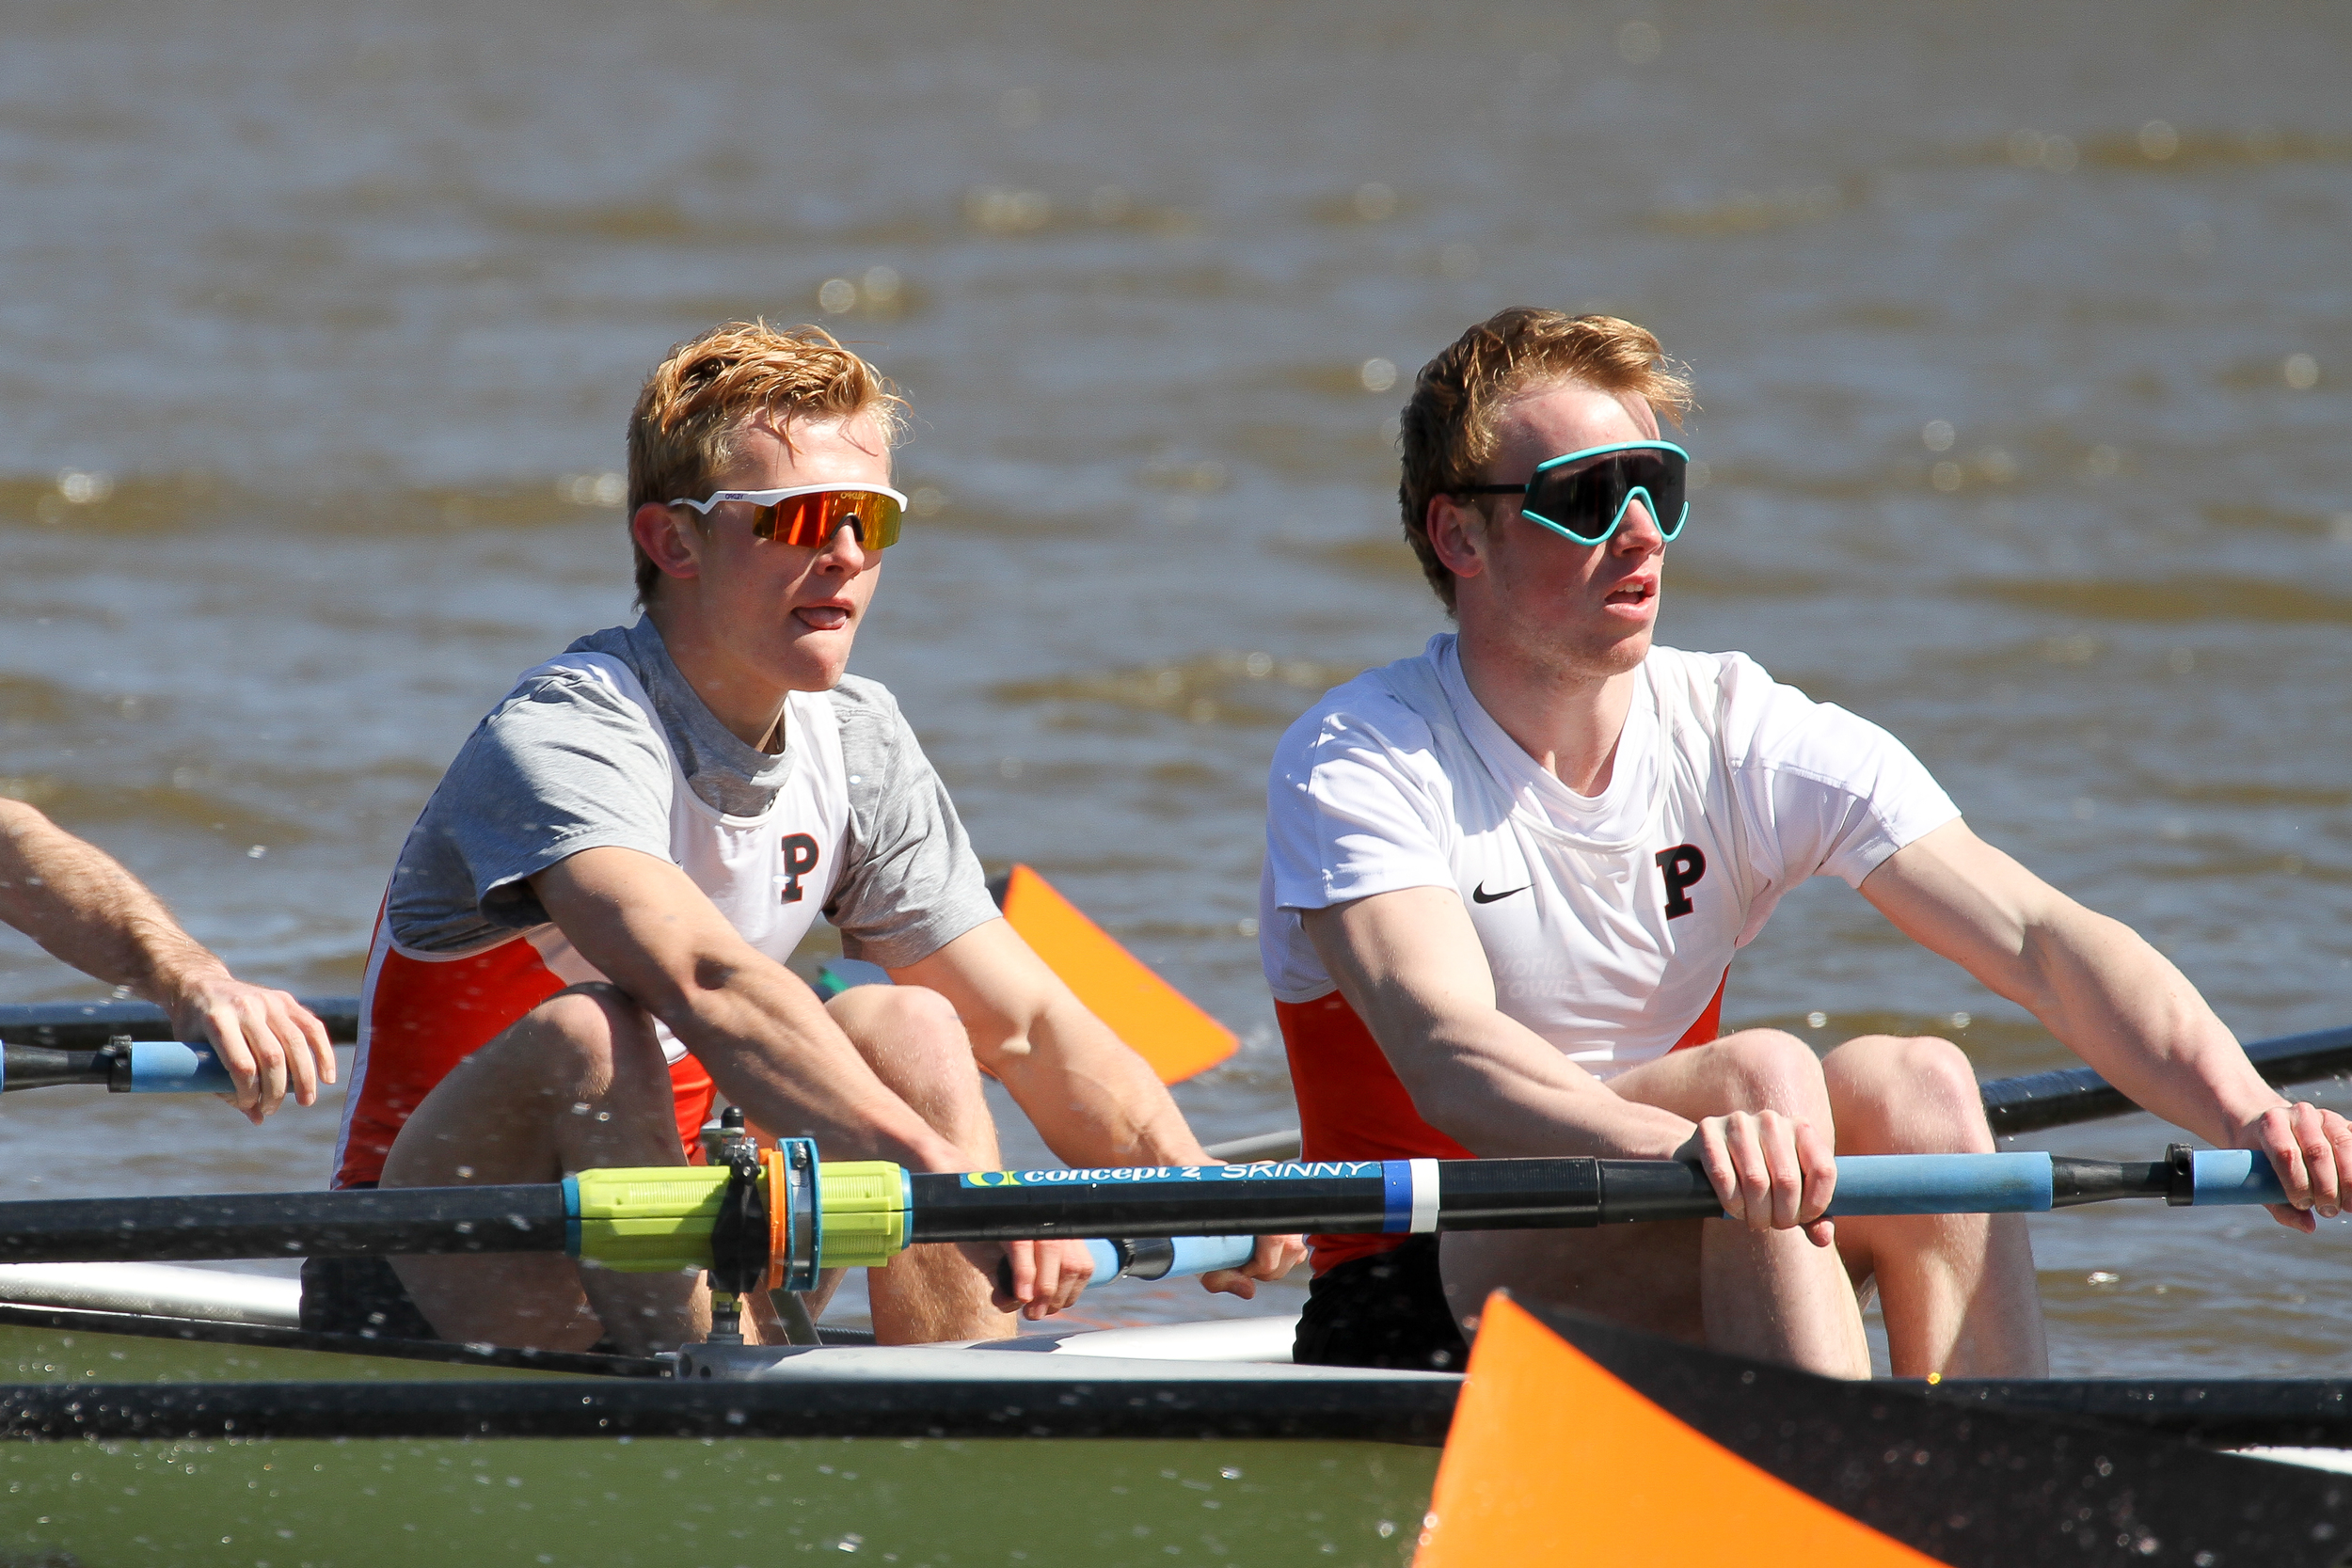 James Goble '18 and Cam Howie '16 row in the Lightweight Men's 1V